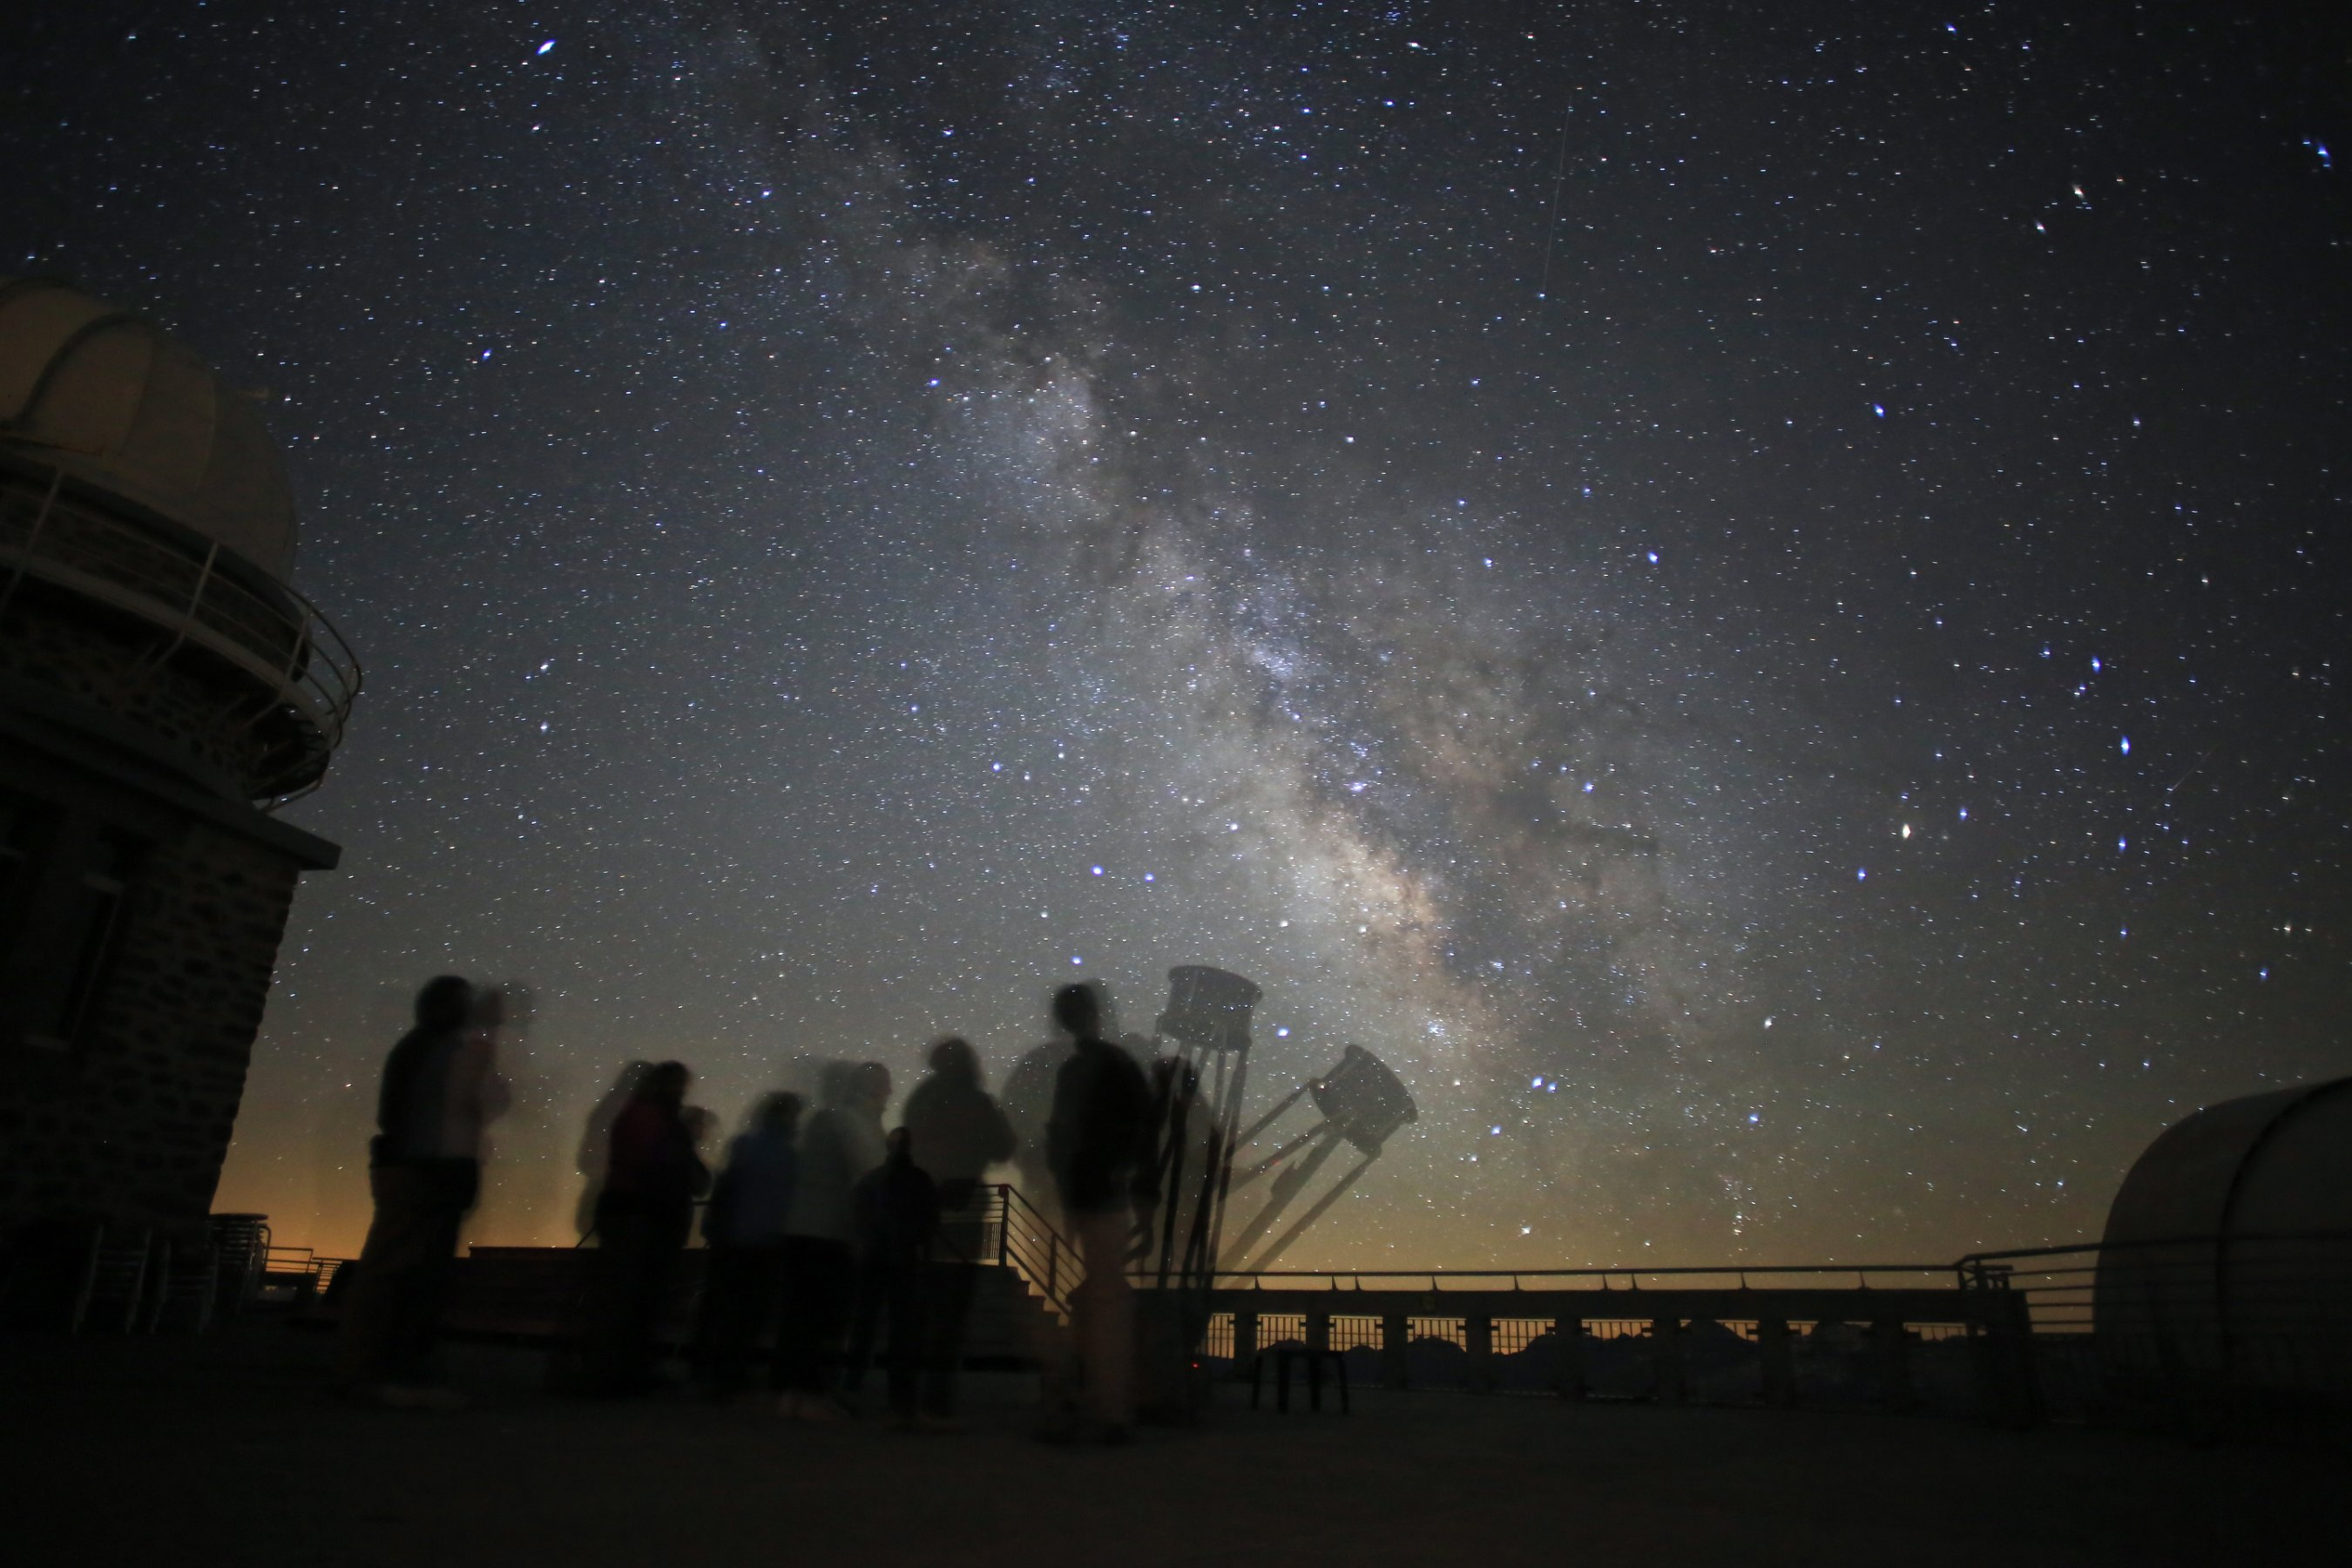 23 best places to stargaze where the skies are dark   CNN Travel